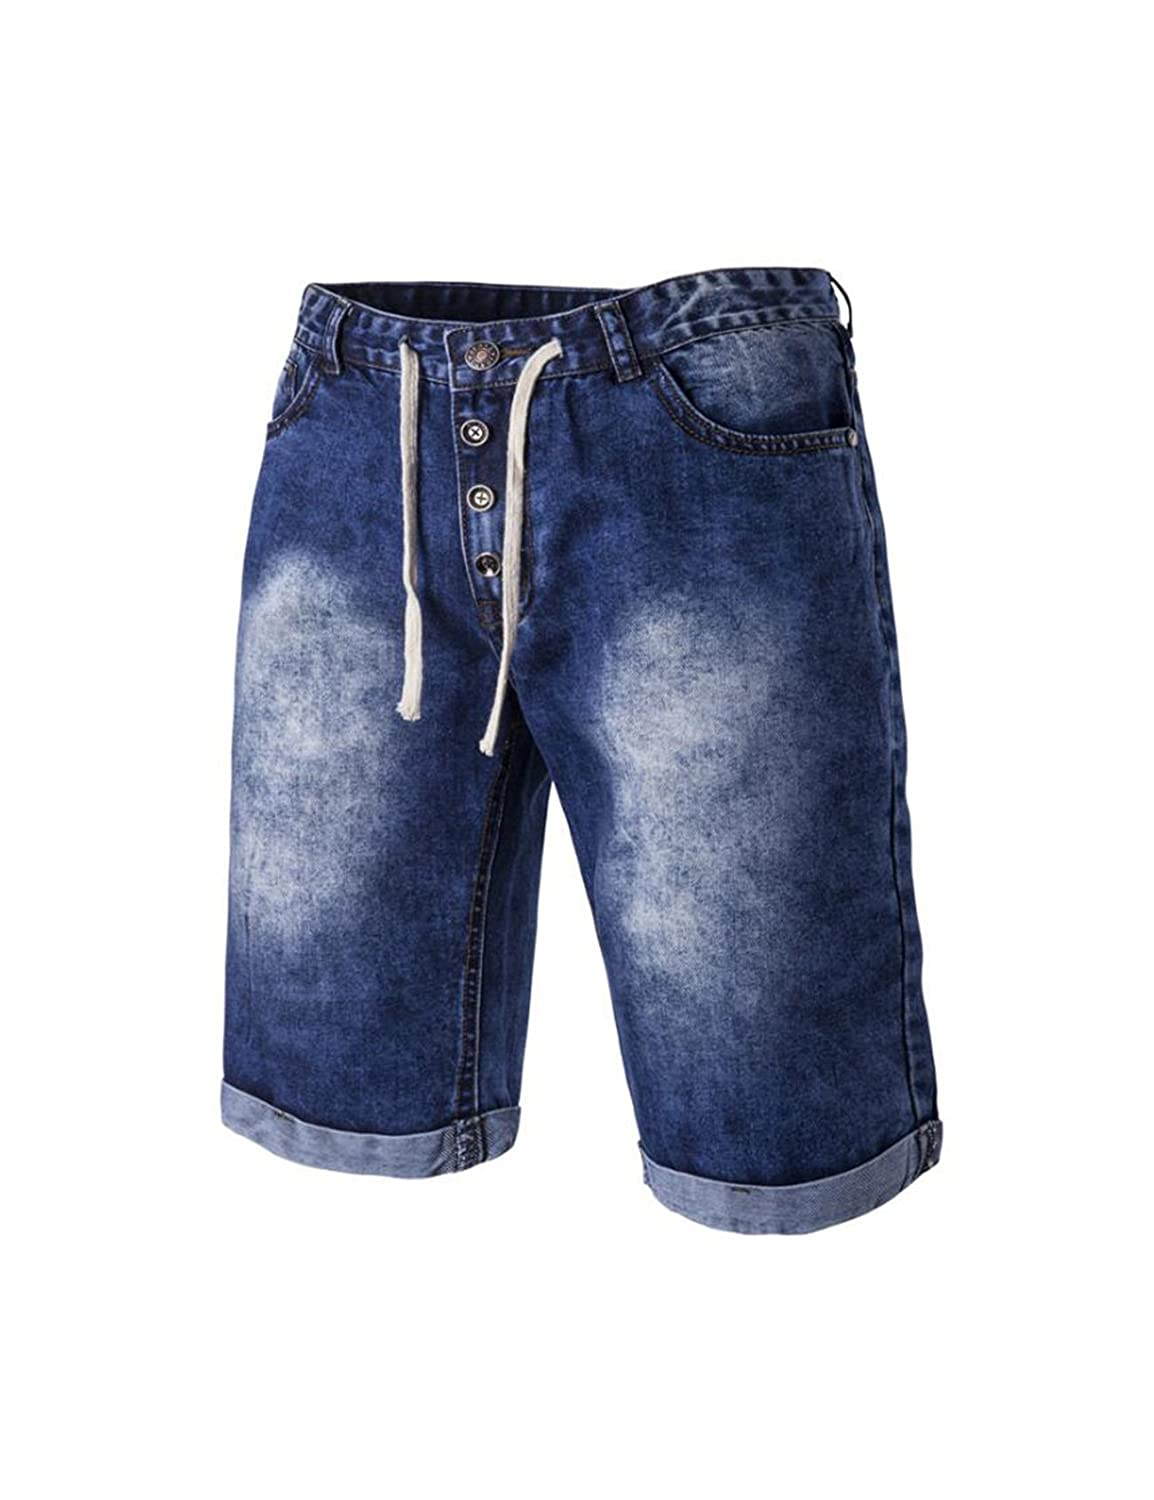 Jueshanzj Mens Jeans Short Slim Denim Straight Stretch Bermuda